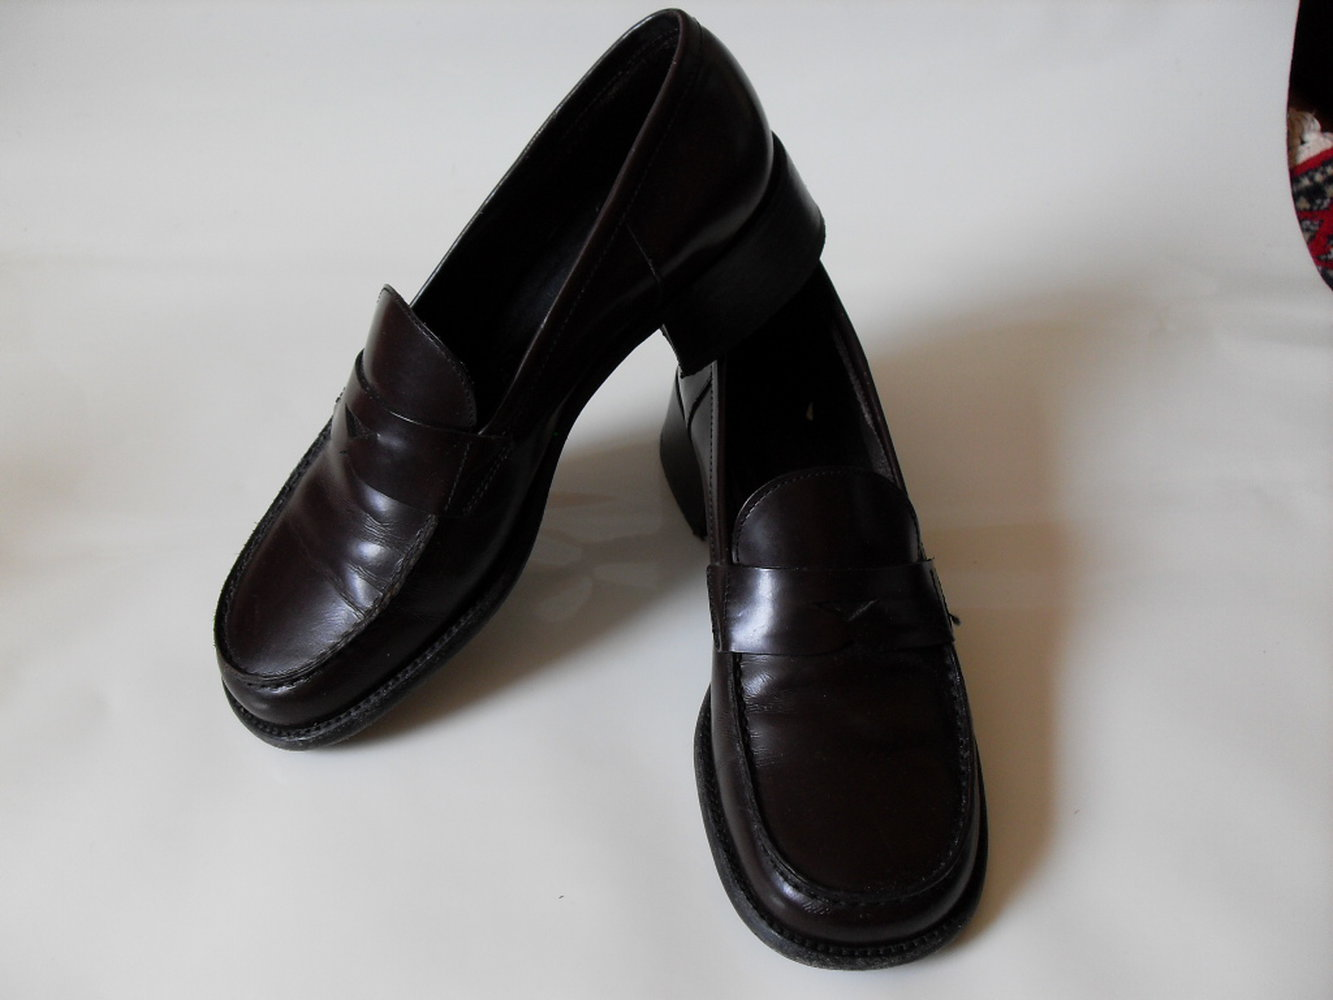 prada luxus made in italy schuhe pumps gr 36 5 original brown shoes. Black Bedroom Furniture Sets. Home Design Ideas